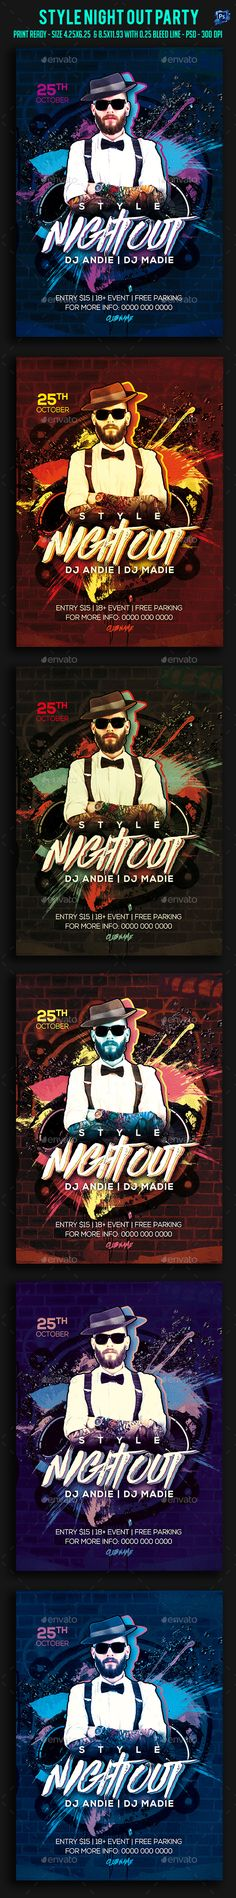 Style Night Out Party Flyer